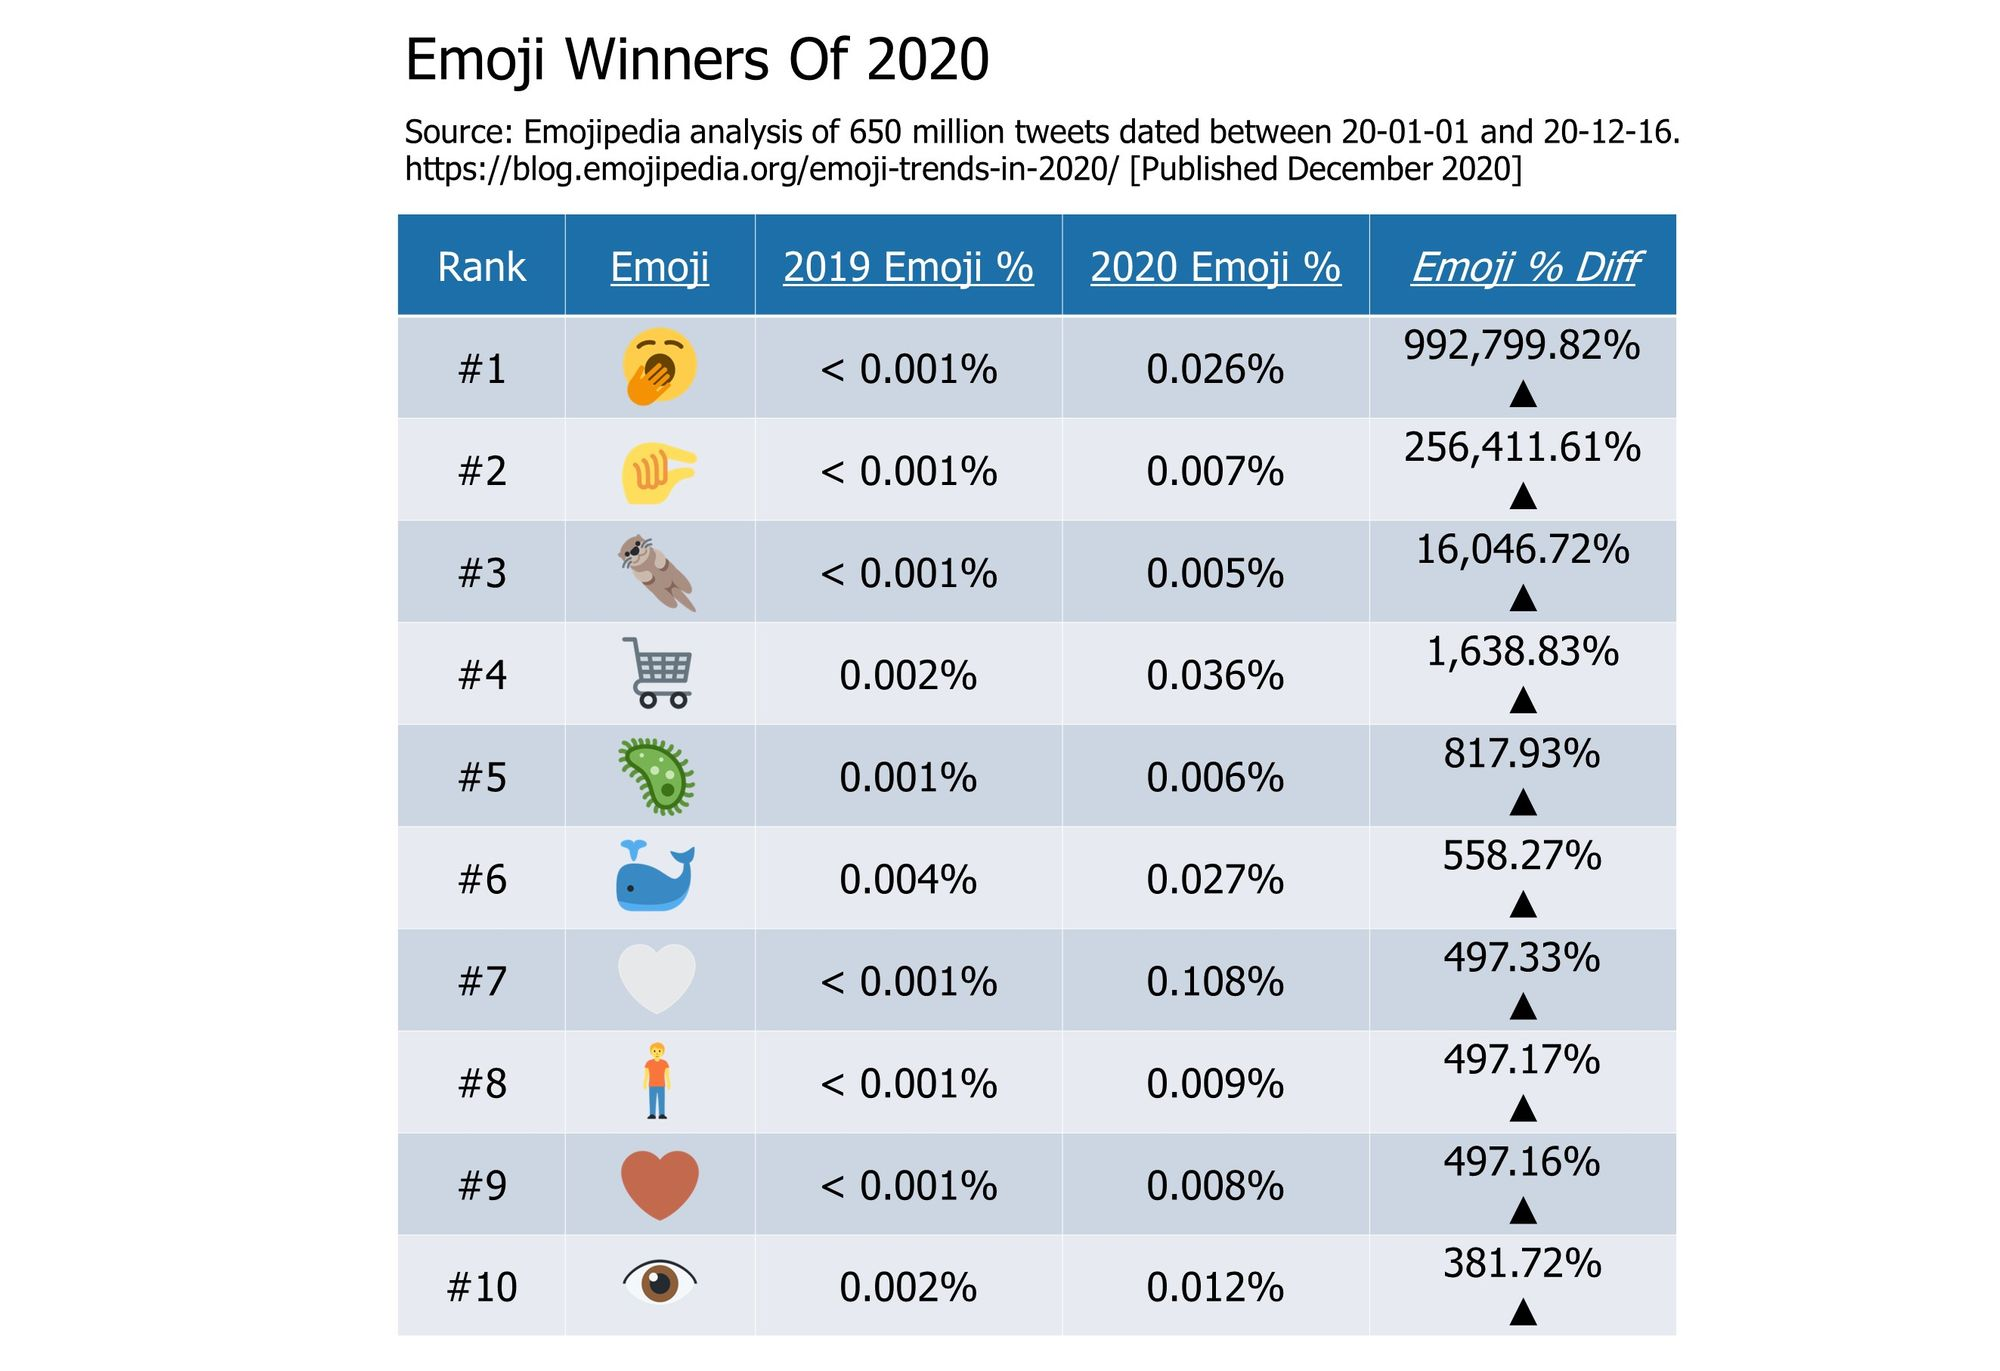 Emoji-Trends-In-2020---Emoji-Winners-Of-2020-1